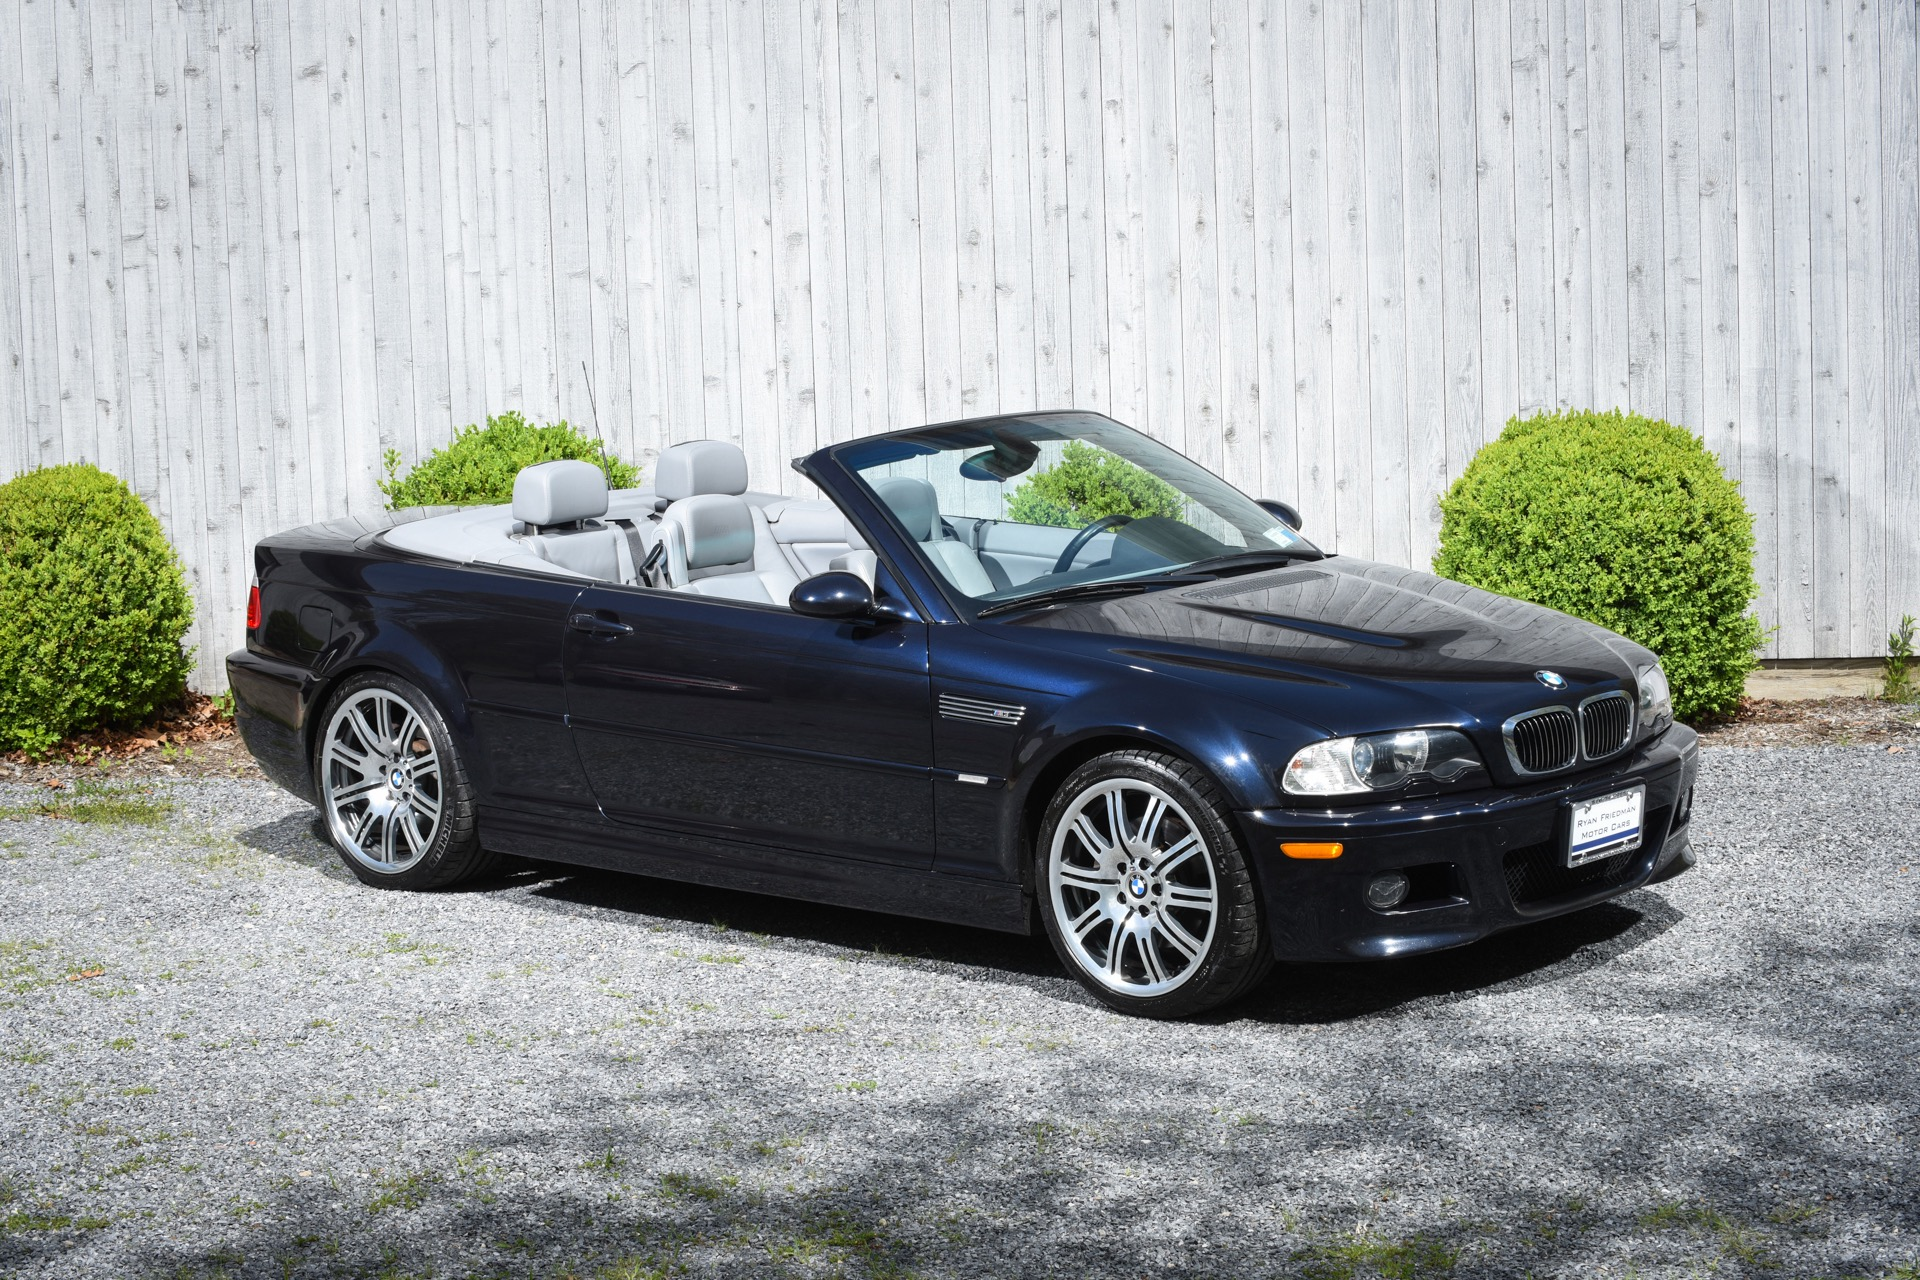 Used 2002 BMW M3 CONVERTIBLE 6-SPEED MANUAL | Valley Stream, NY